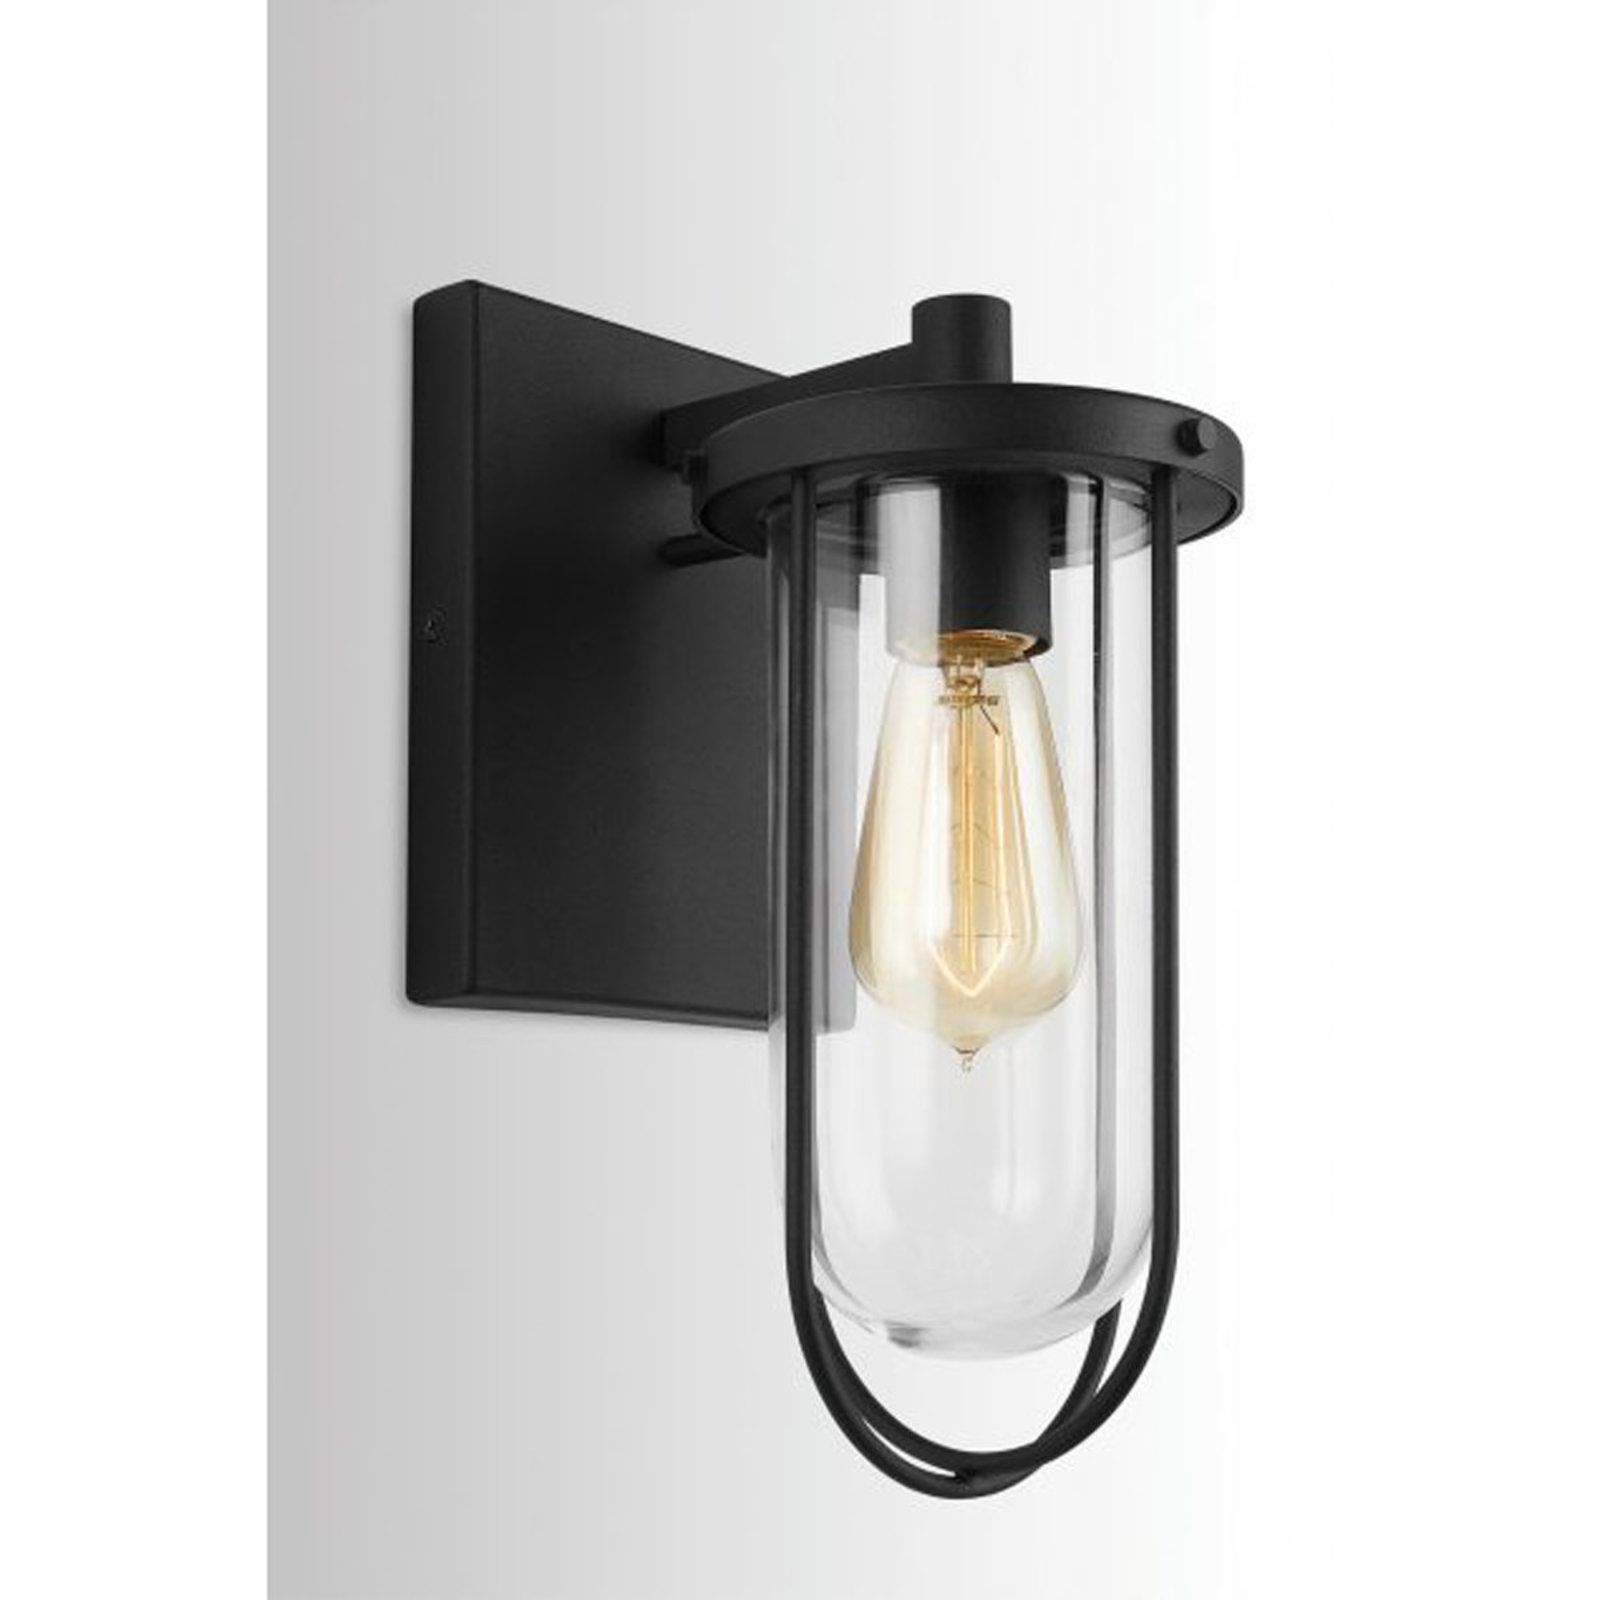 Orion Outdoor Wall Sconce Small Sconces Outdoor Wall Sconce